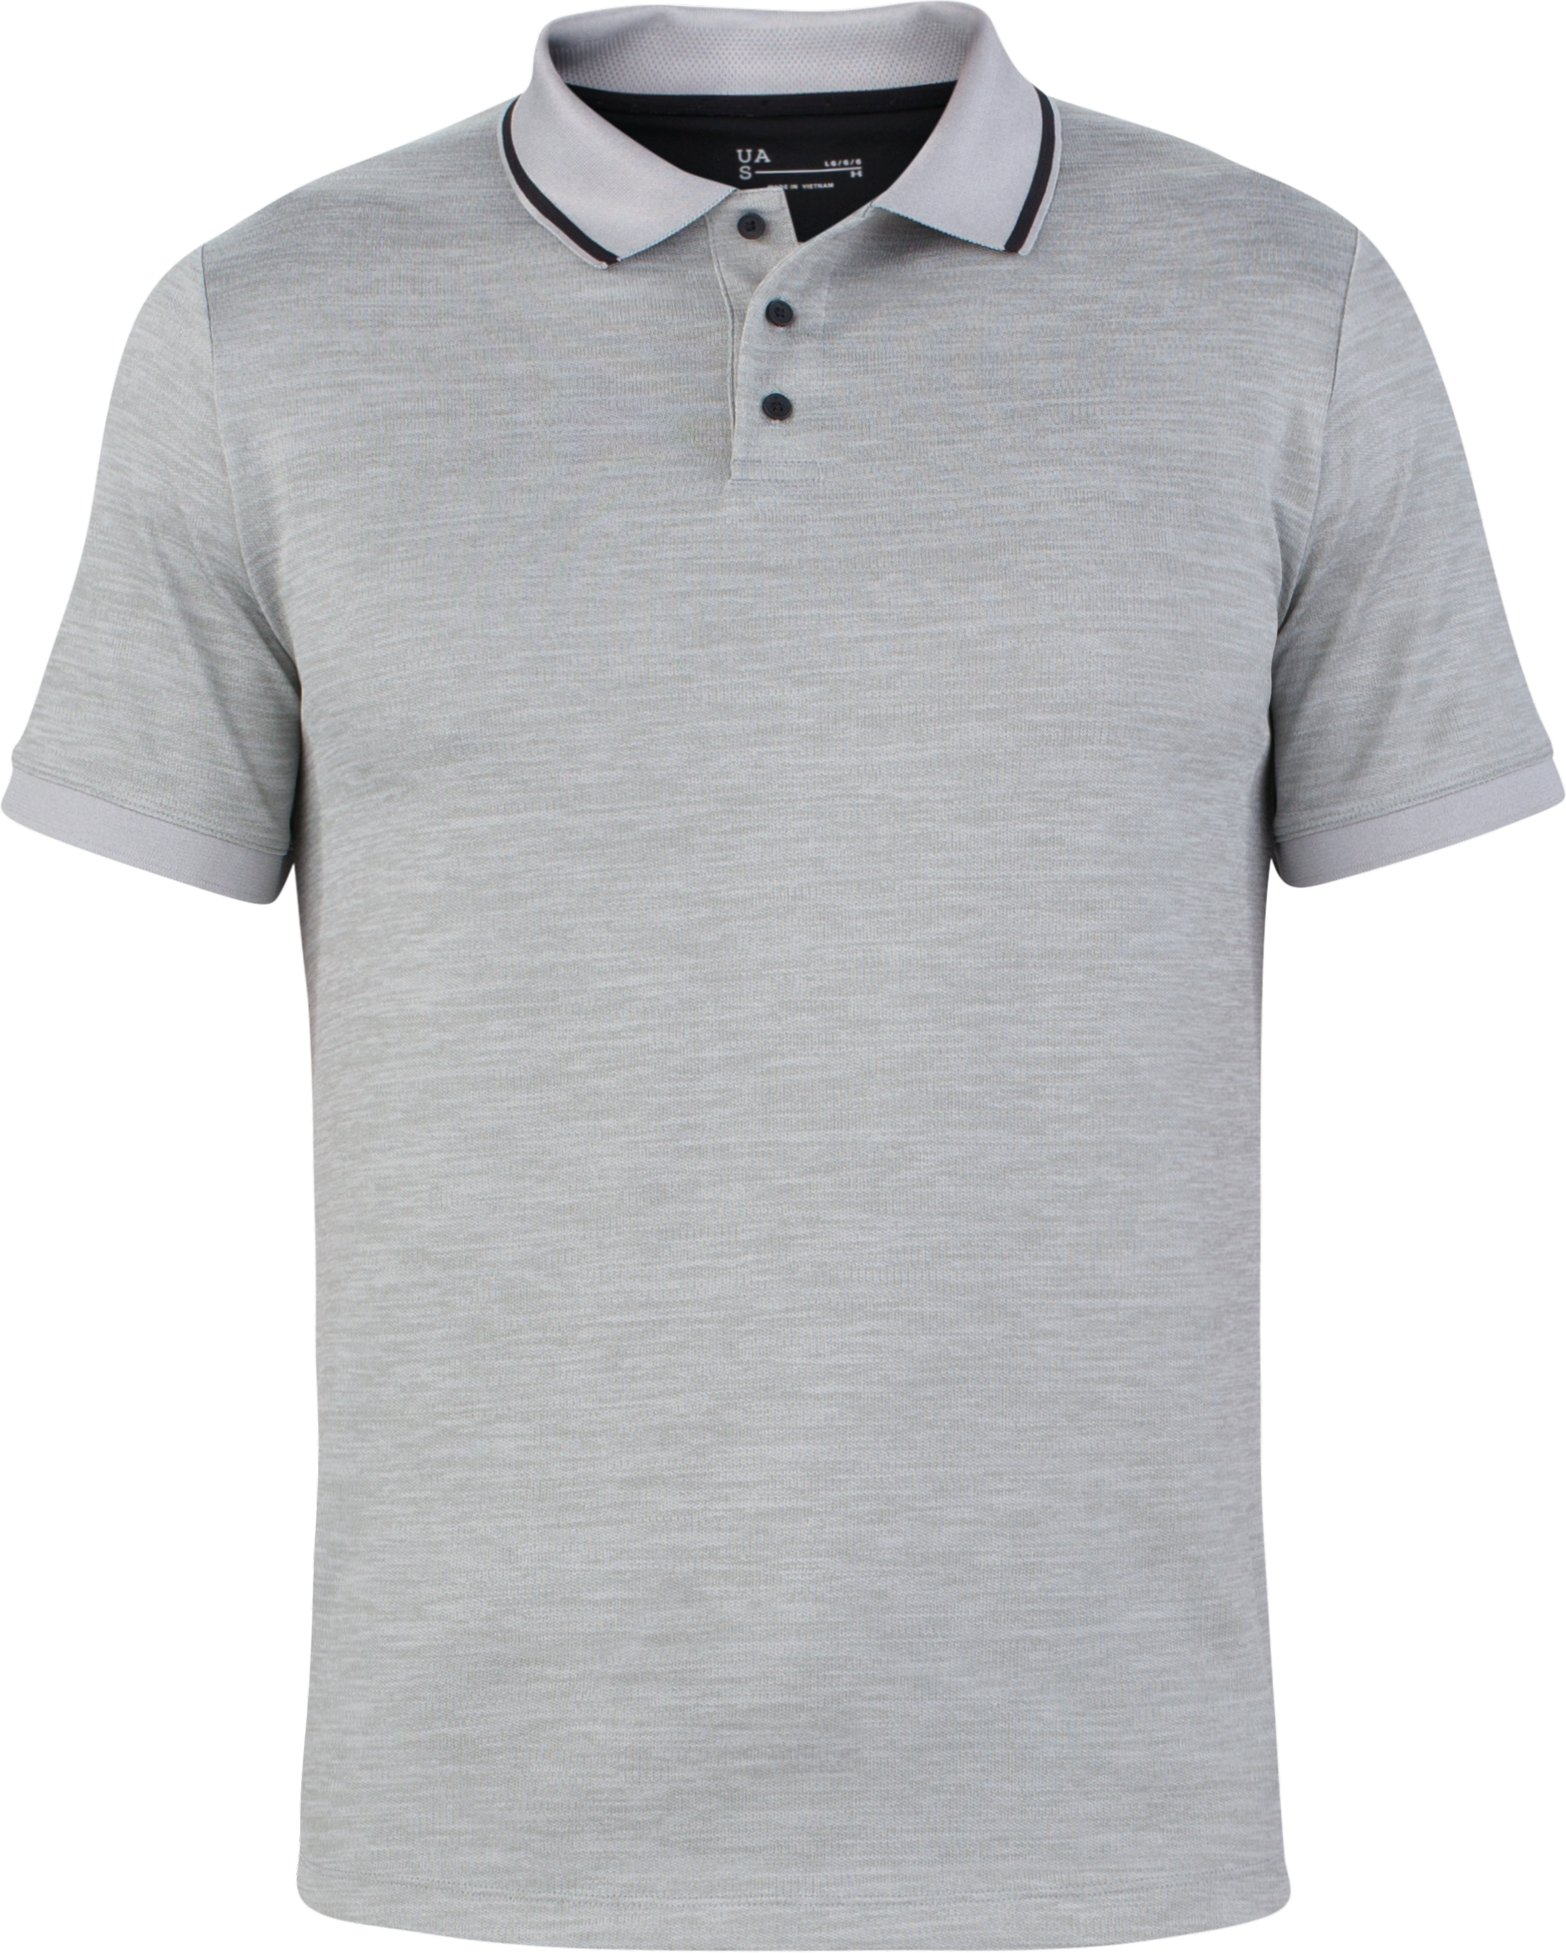 Men's UAS Pique Short Sleeve Polo, LIGHT HEATHER GRAY, undefined